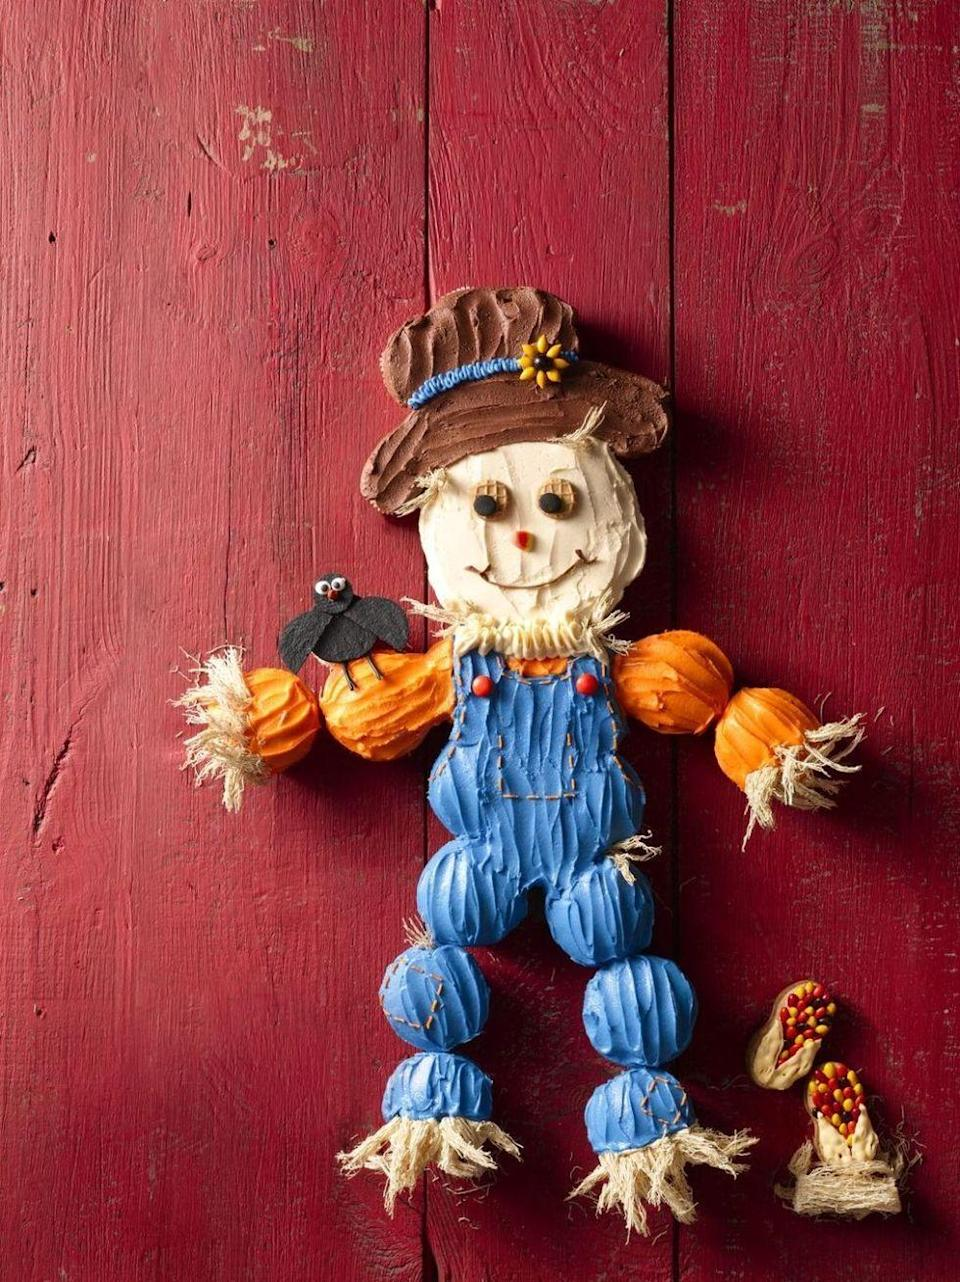 """<p>Something tells us this won't scare anyone away from the dessert table, but you can try! </p><p>Get the recipe from <a href=""""https://www.womansday.com/food-recipes/food-drinks/recipes/a56159/cupcake-scarecrow-recipe/"""" rel=""""nofollow noopener"""" target=""""_blank"""" data-ylk=""""slk:Woman's Day"""" class=""""link rapid-noclick-resp"""">Woman's Day</a>.</p>"""